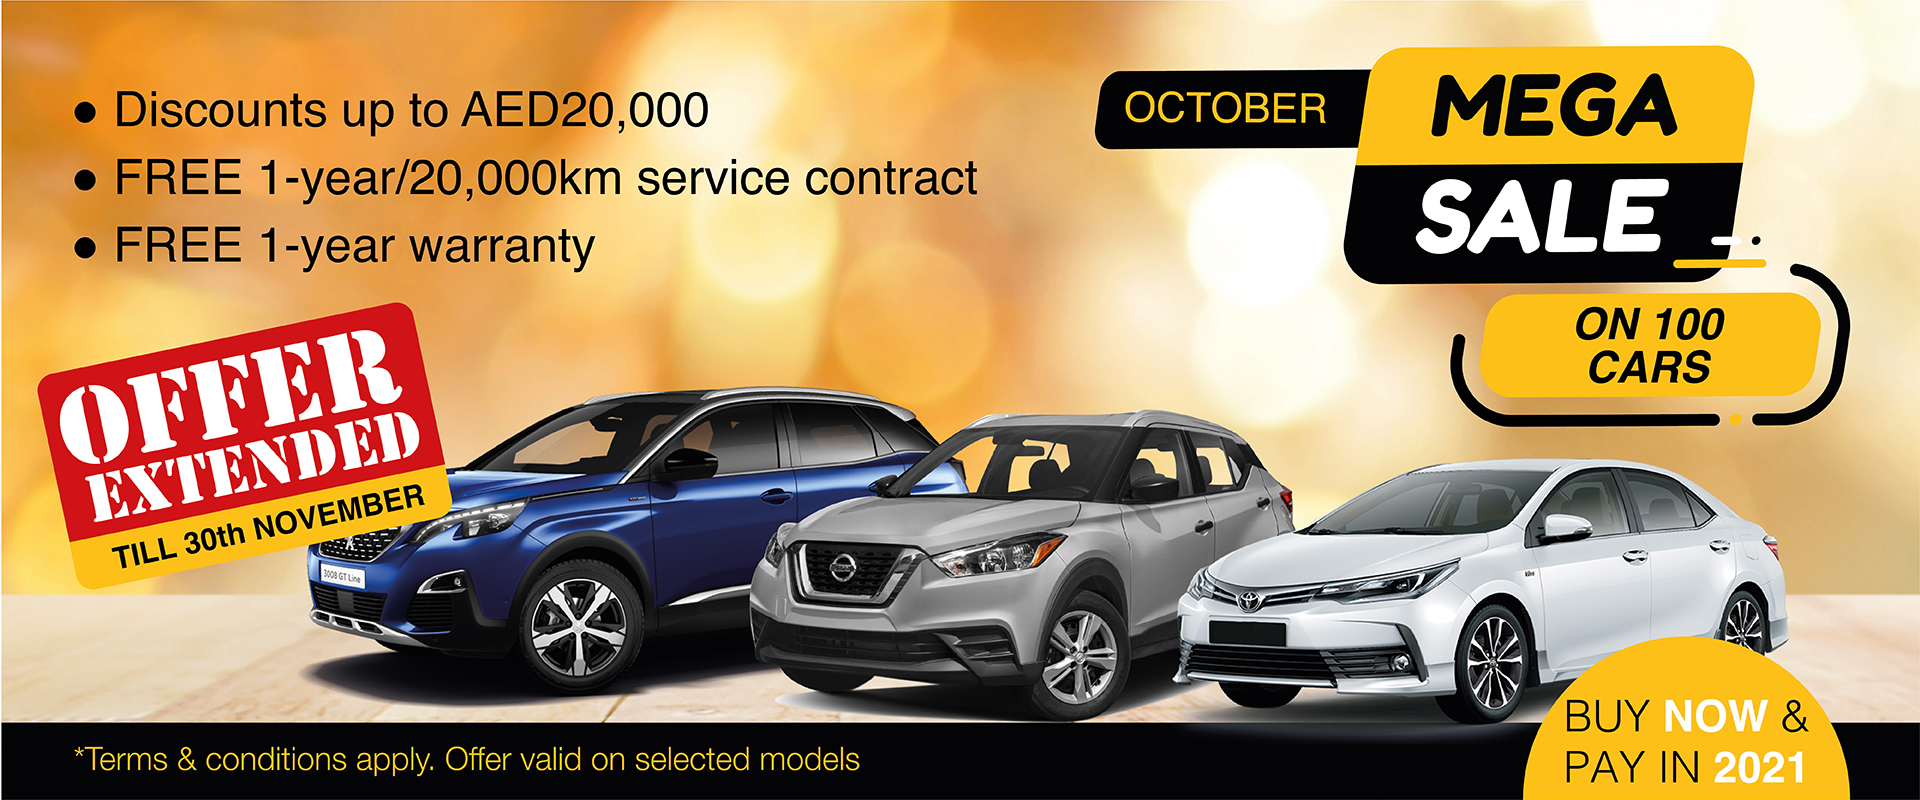 Mega Sale on 100 cars Buy Now and Pay in 2021